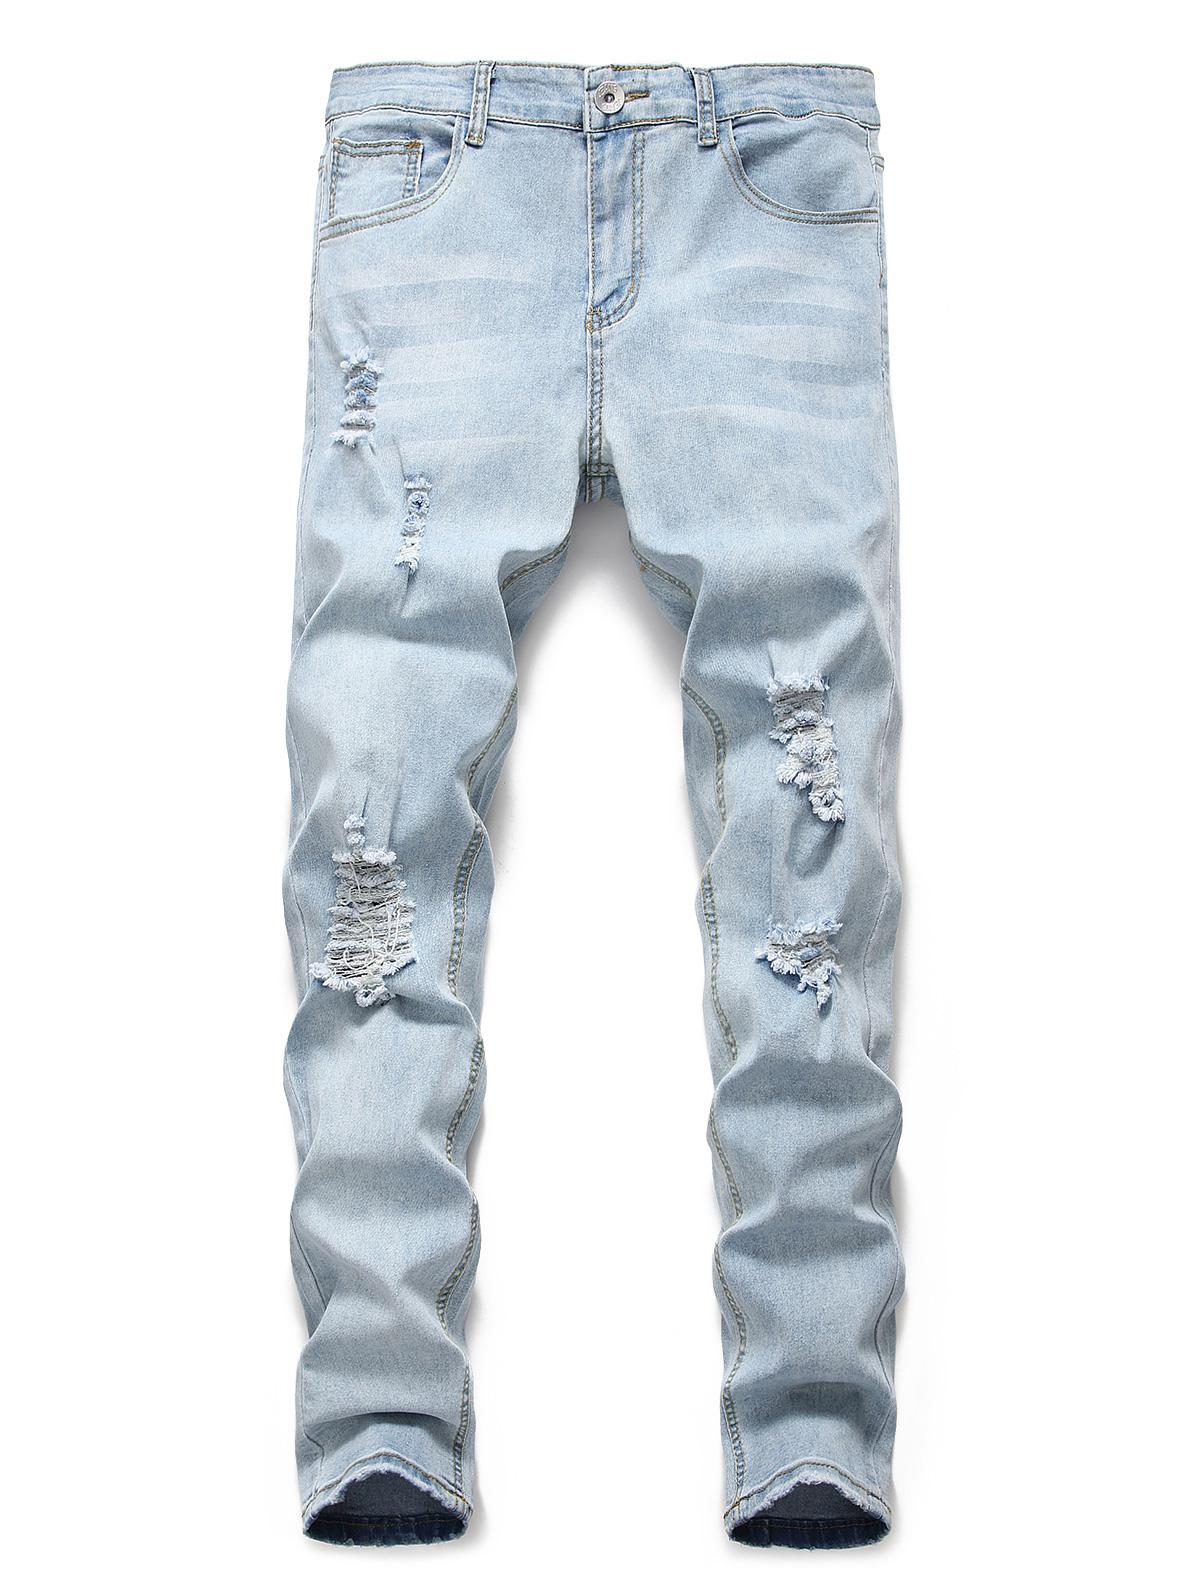 Light Wash Distressed Decoration Casual Jeans